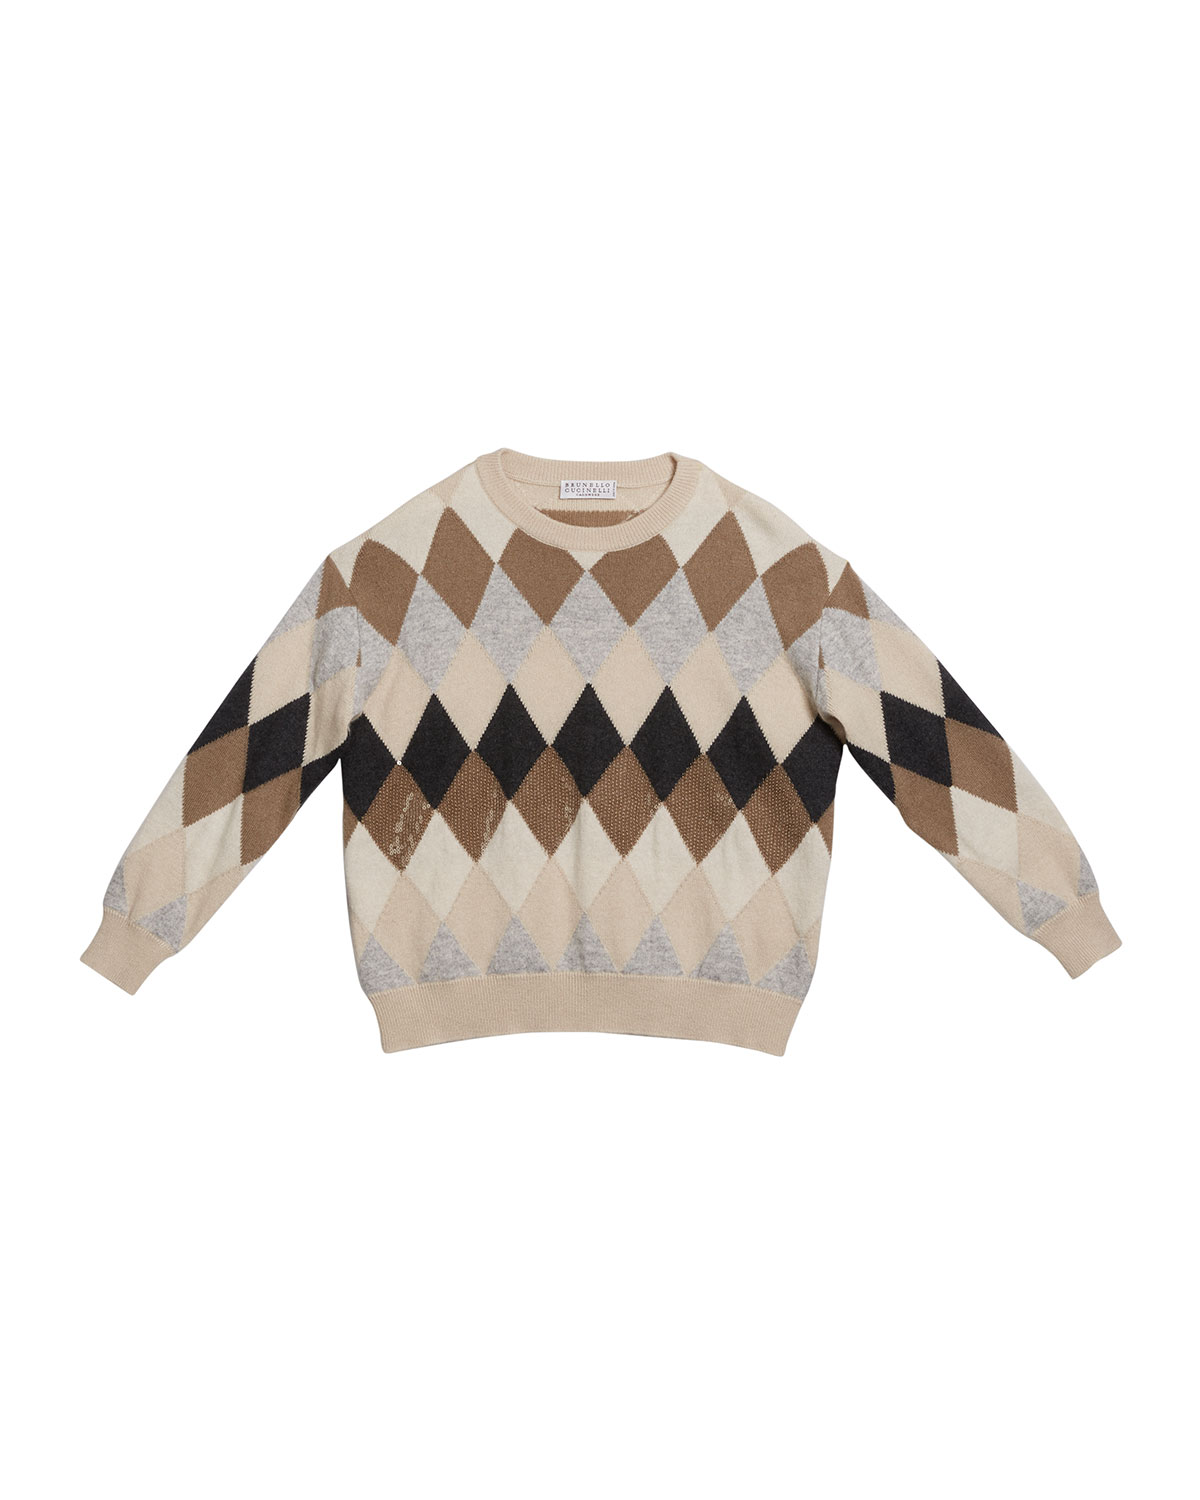 Brunello Cucinelli GIRL'S ARGYLE WOOL-BLEND SWEATER WITH PAILLETTES